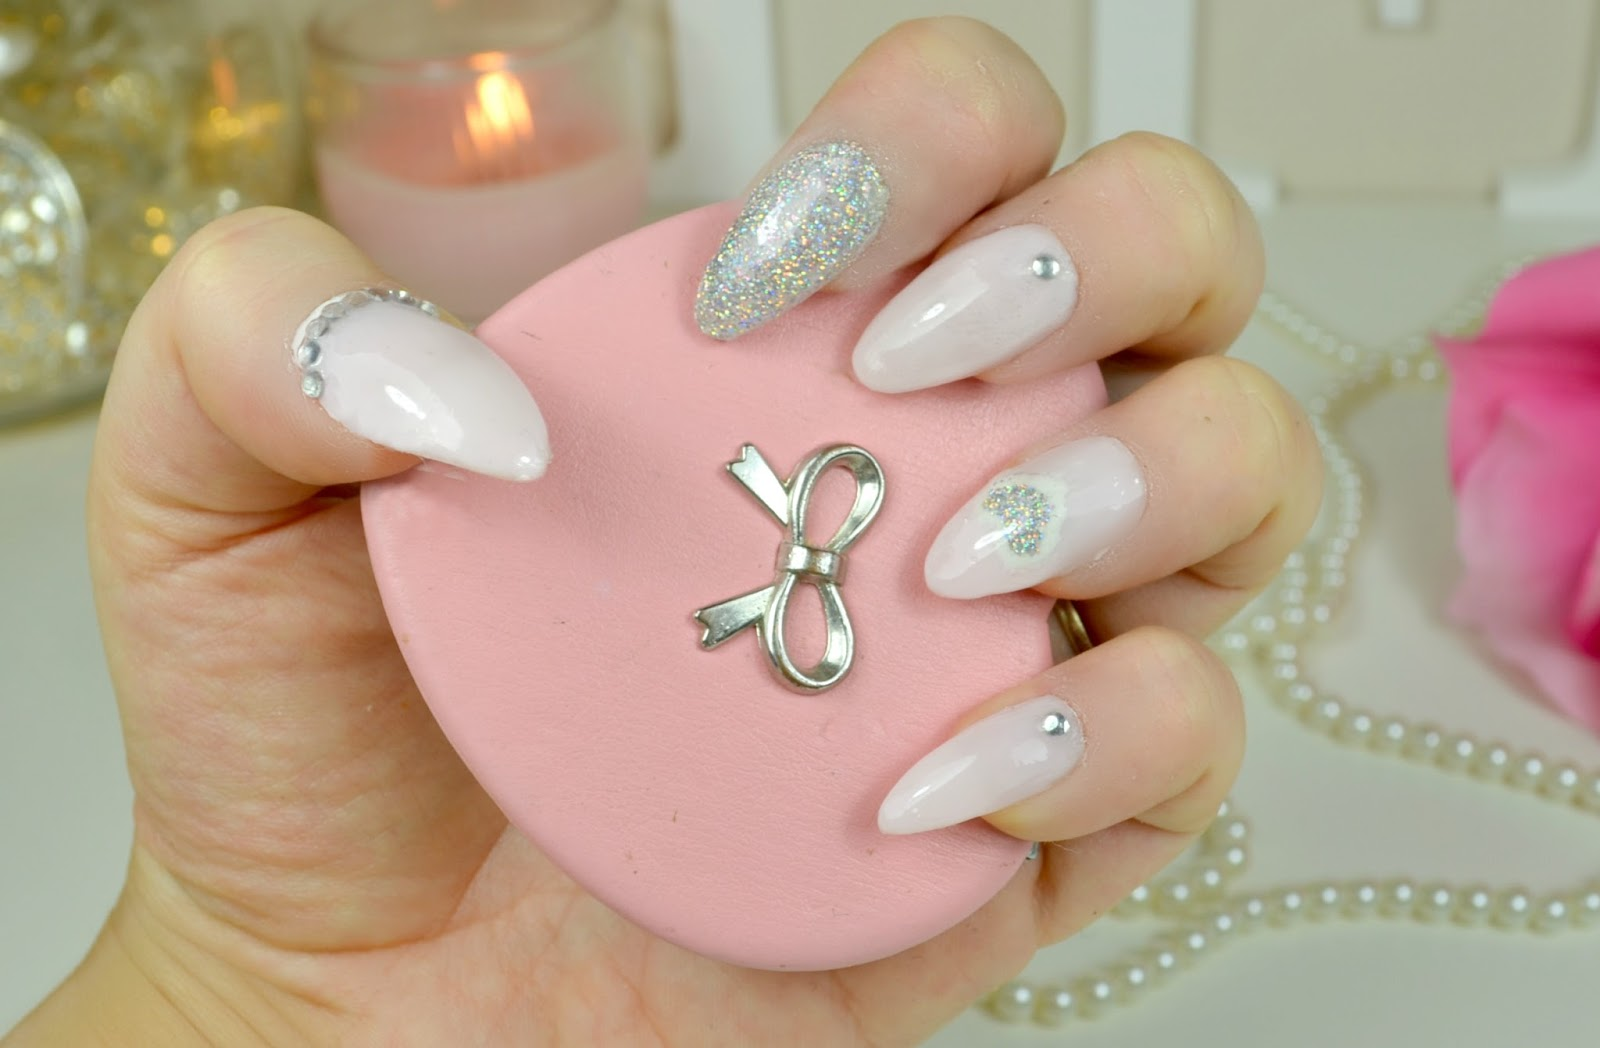 Get valentines stiletto nails at home! - Laura Trends